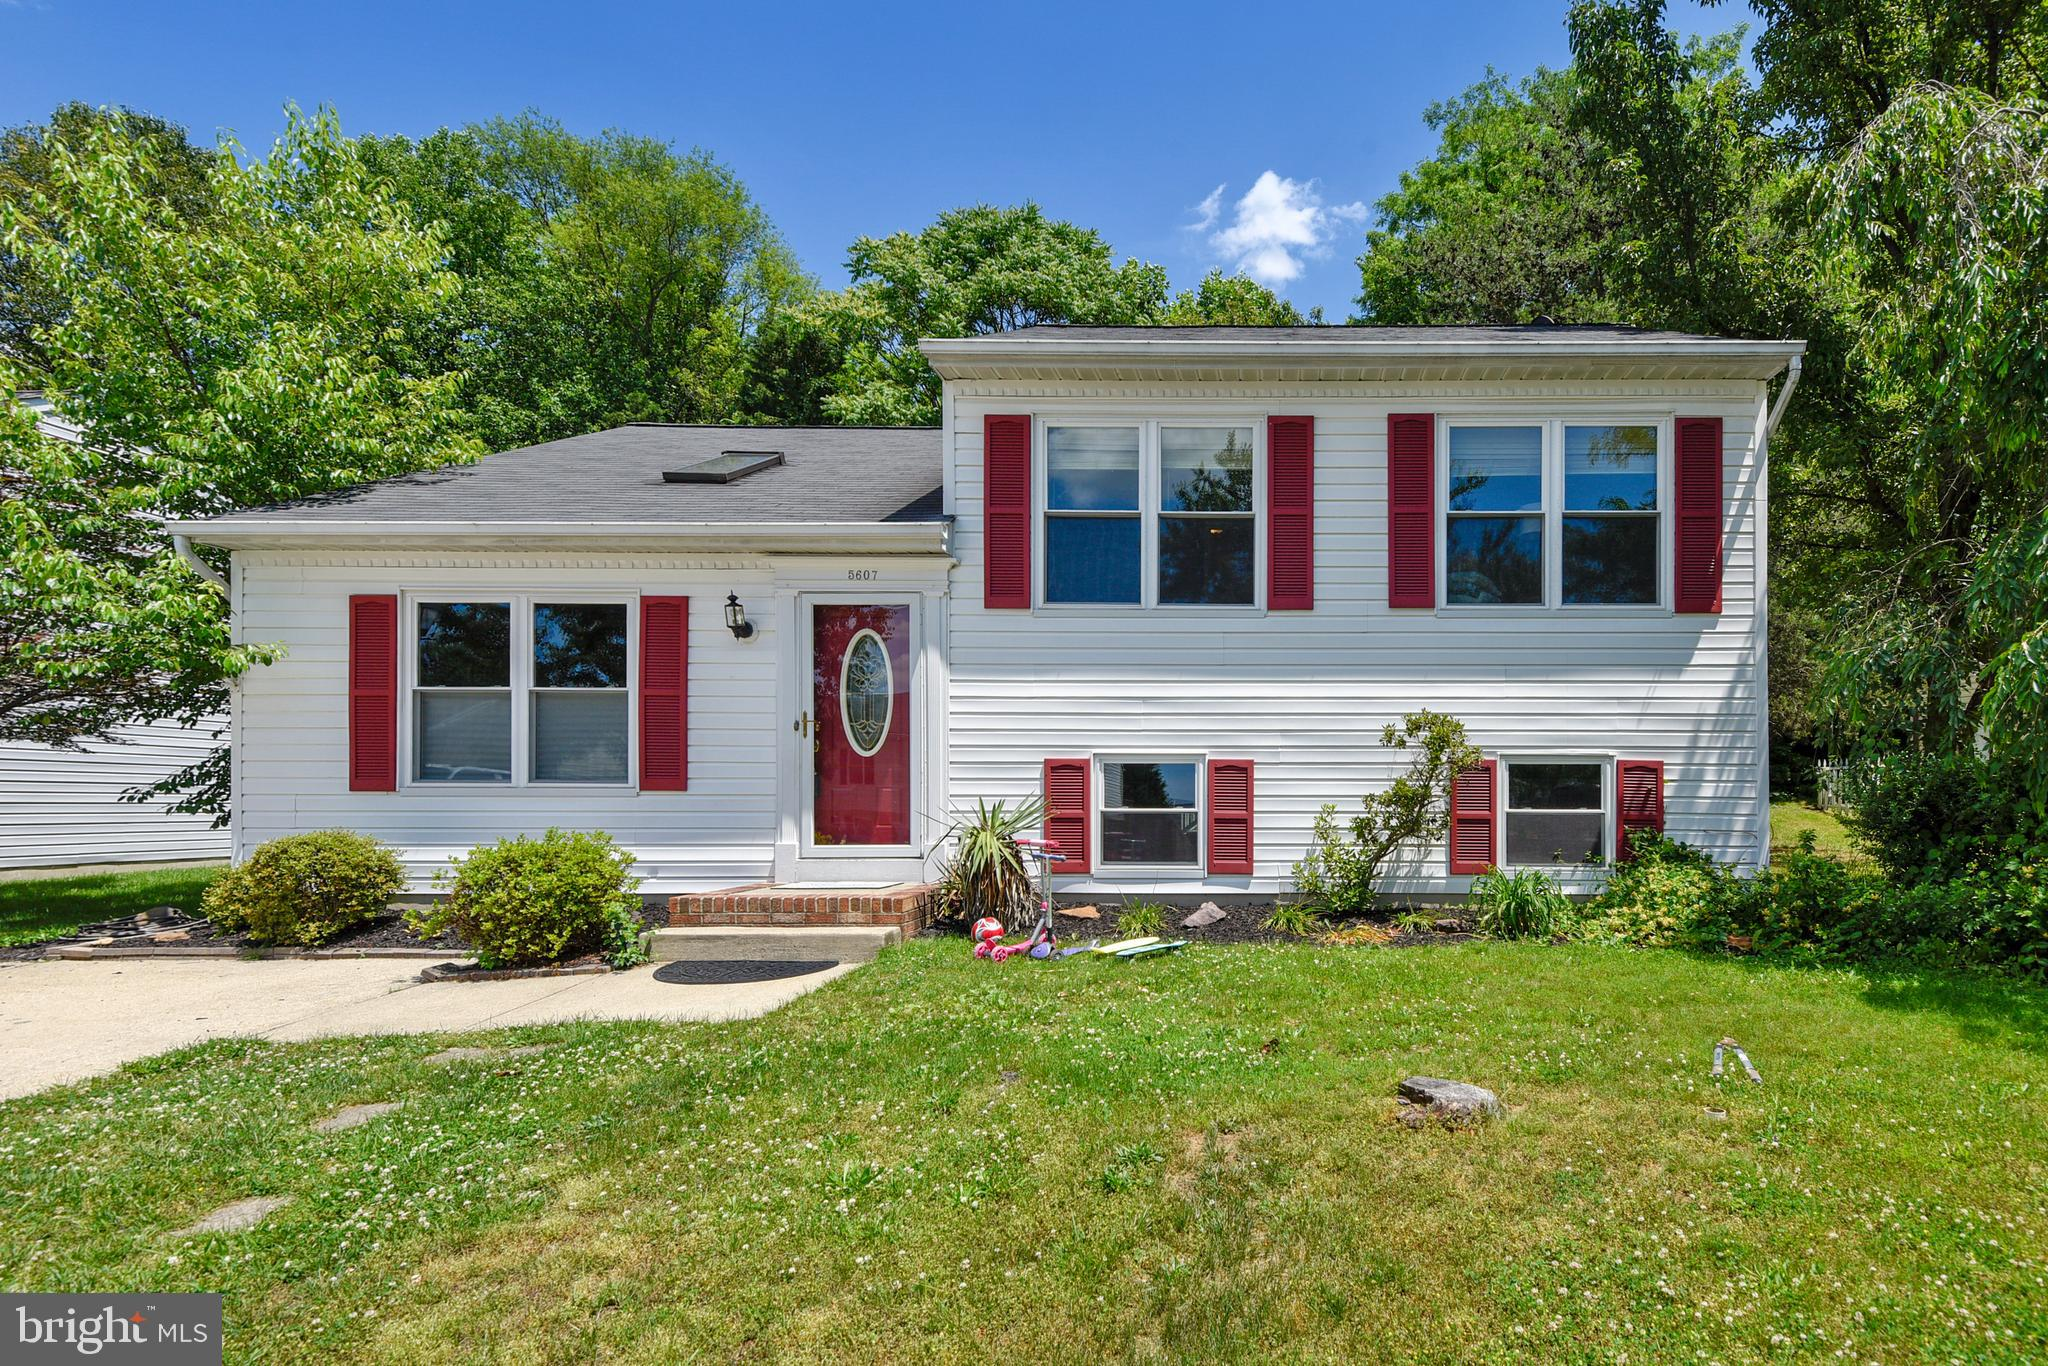 5607 CLIFF SIDE COURT, BALTIMORE, MD 21225